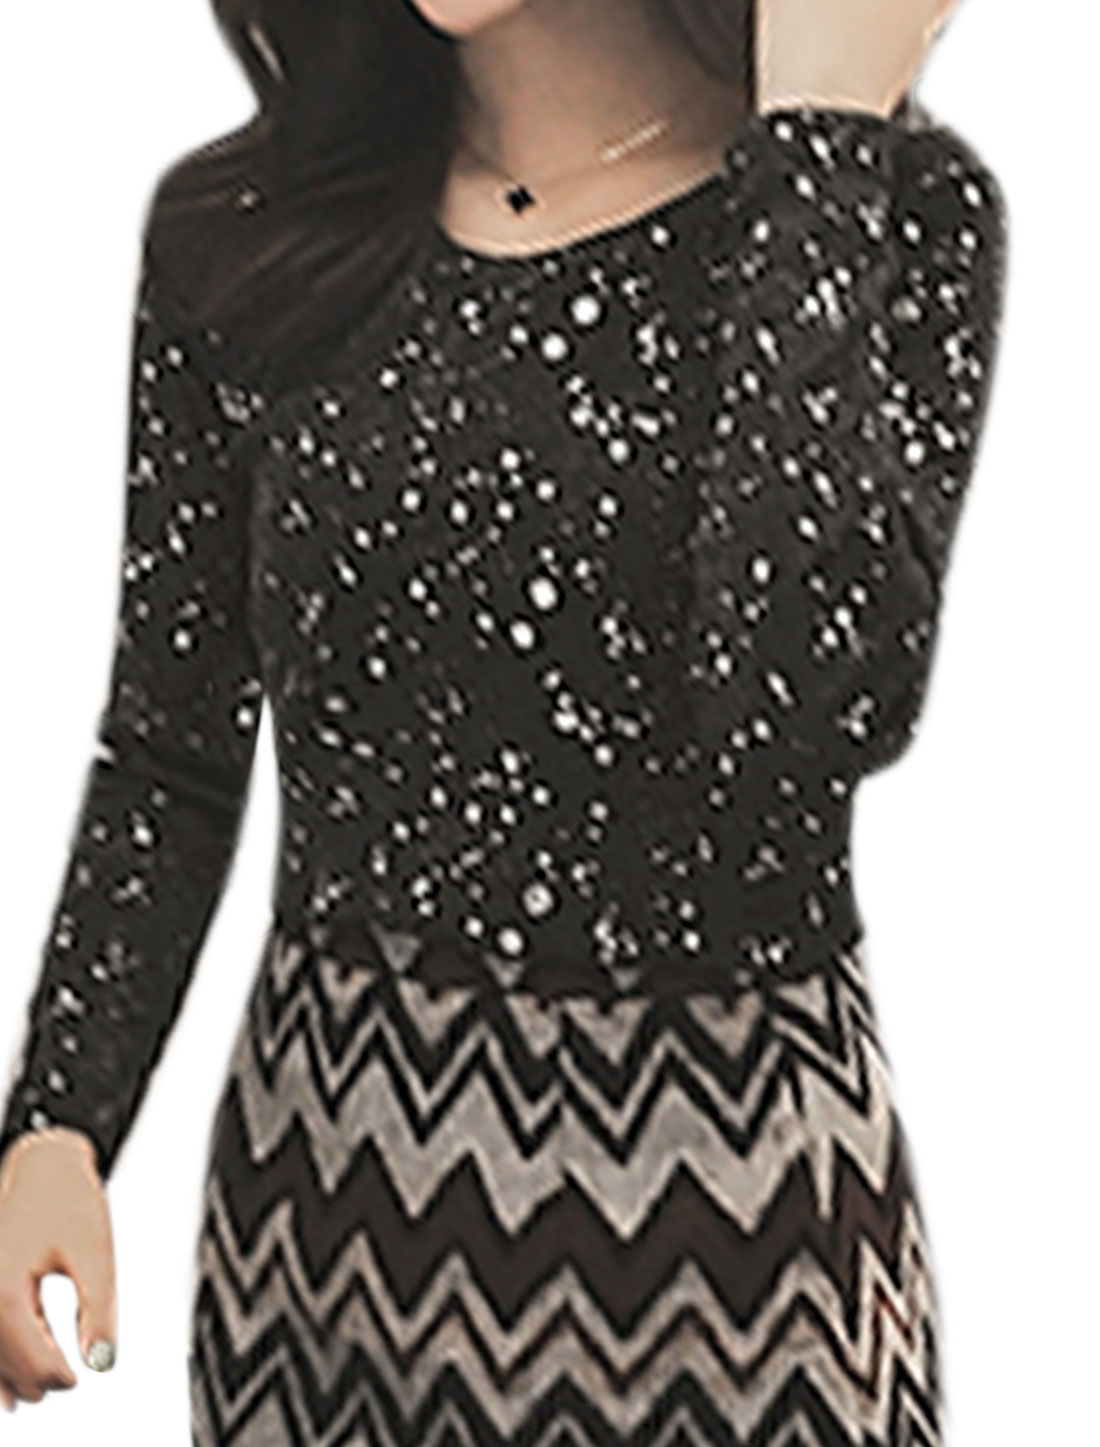 Lady Round Neck Long Sleeves Bling Polka Dots Pattern Pullover Tops Black XS